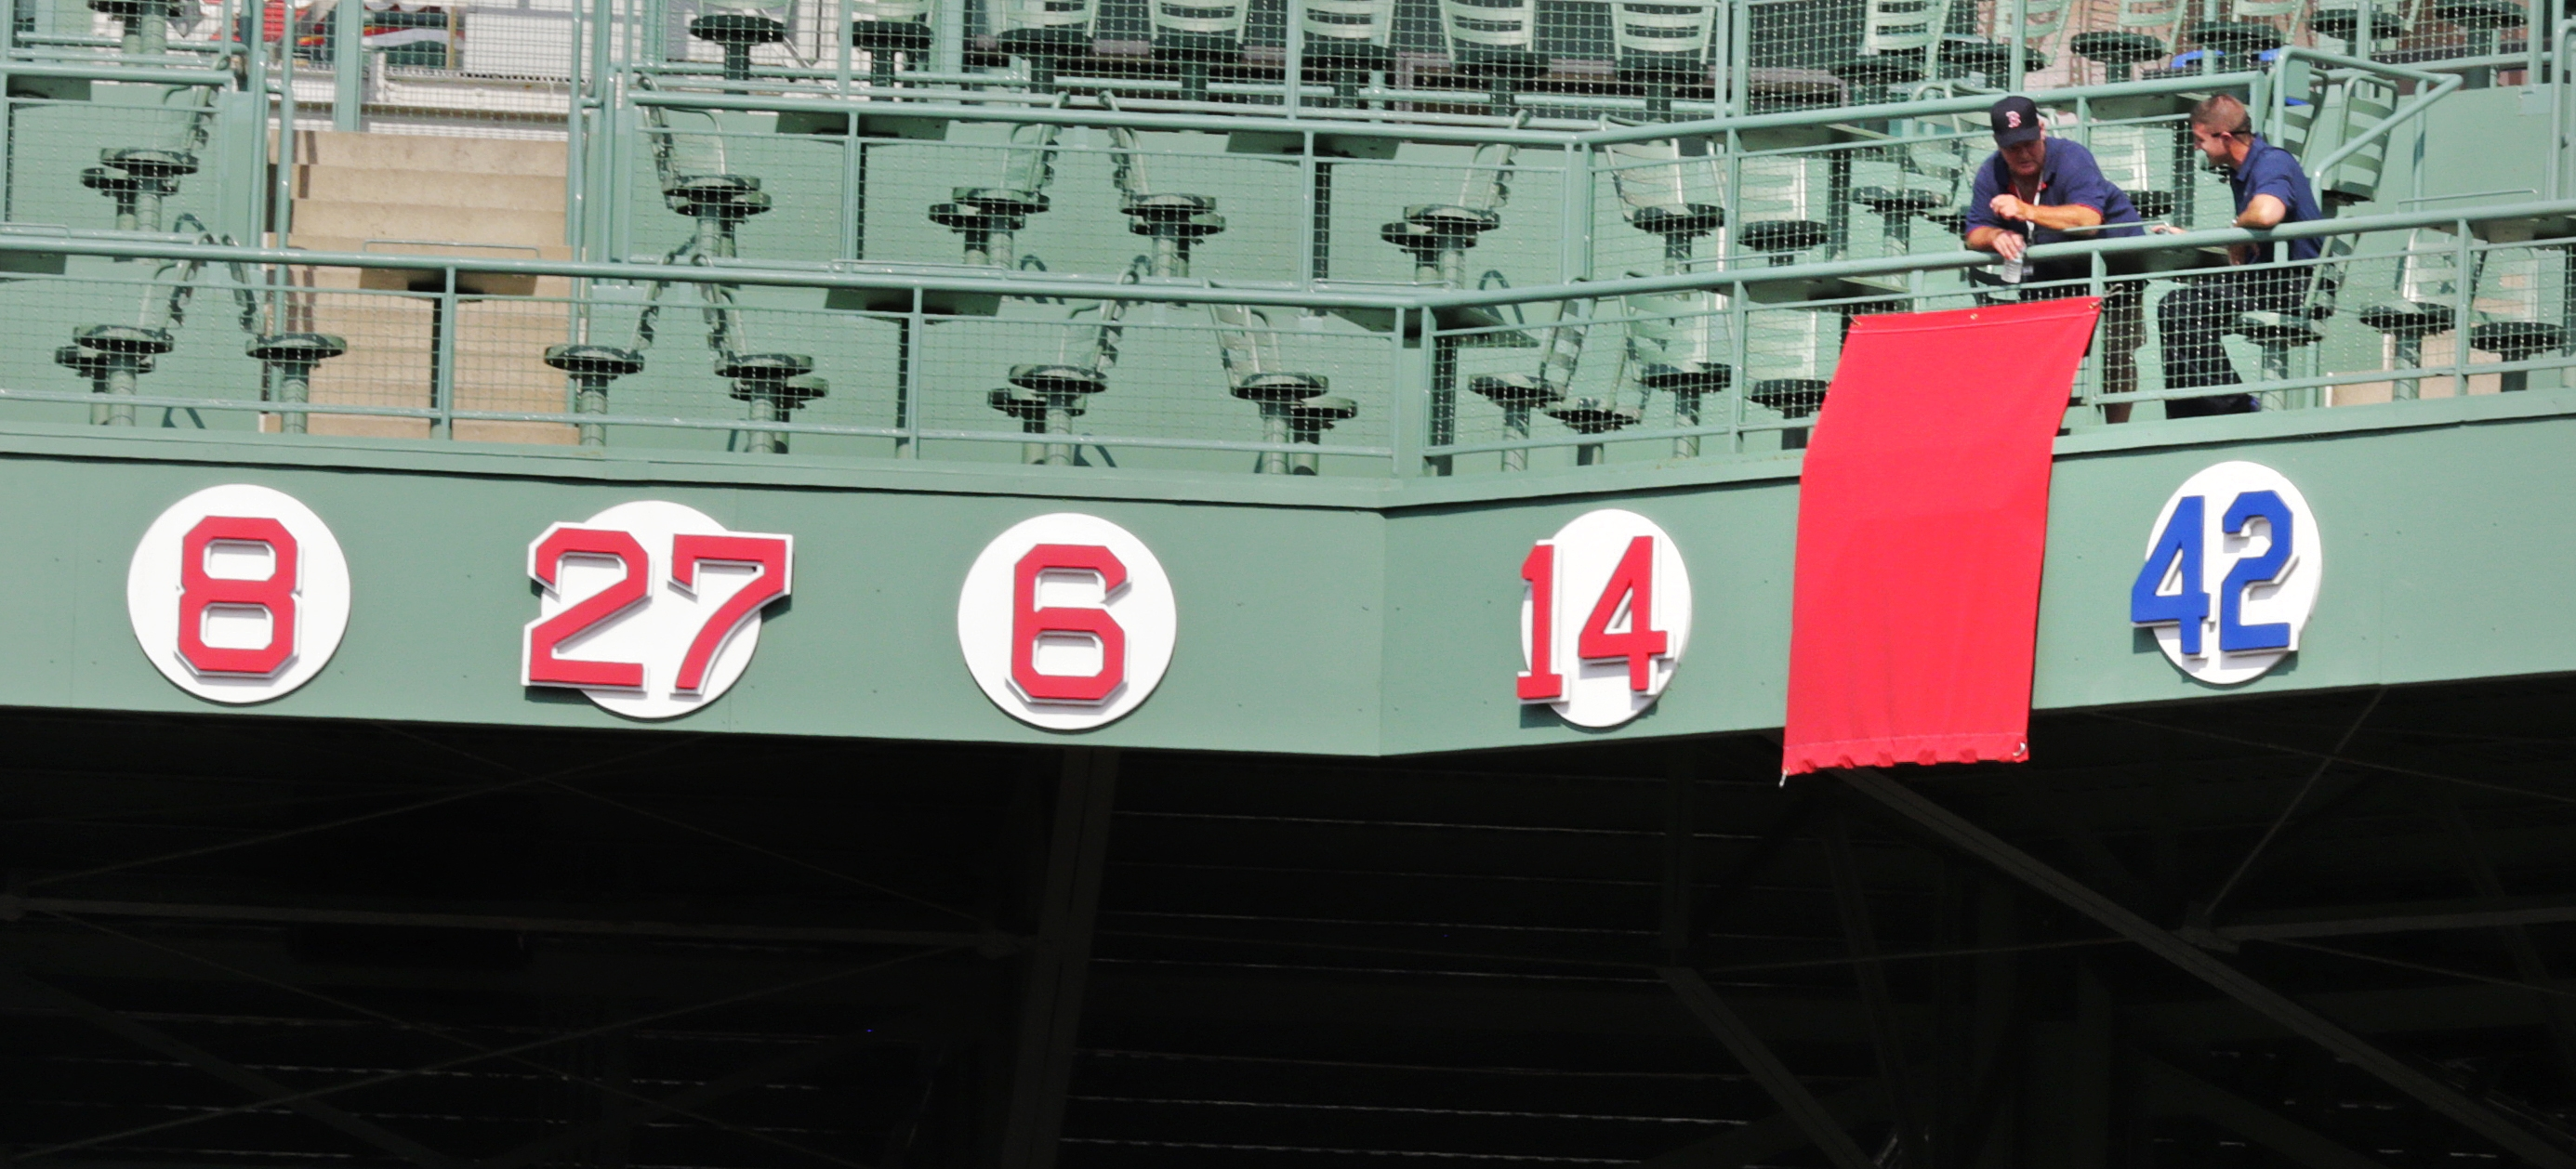 A drape covers the number 45 of Boston Red Sox Hall of Fame pitcher Pedro Martinez prior to a baseball game against the Chicago White Sox at Fenway Park in Boston, Tuesday, July 28, 2015. Martinez's jersey number will be retired, and hang between Red Sox'